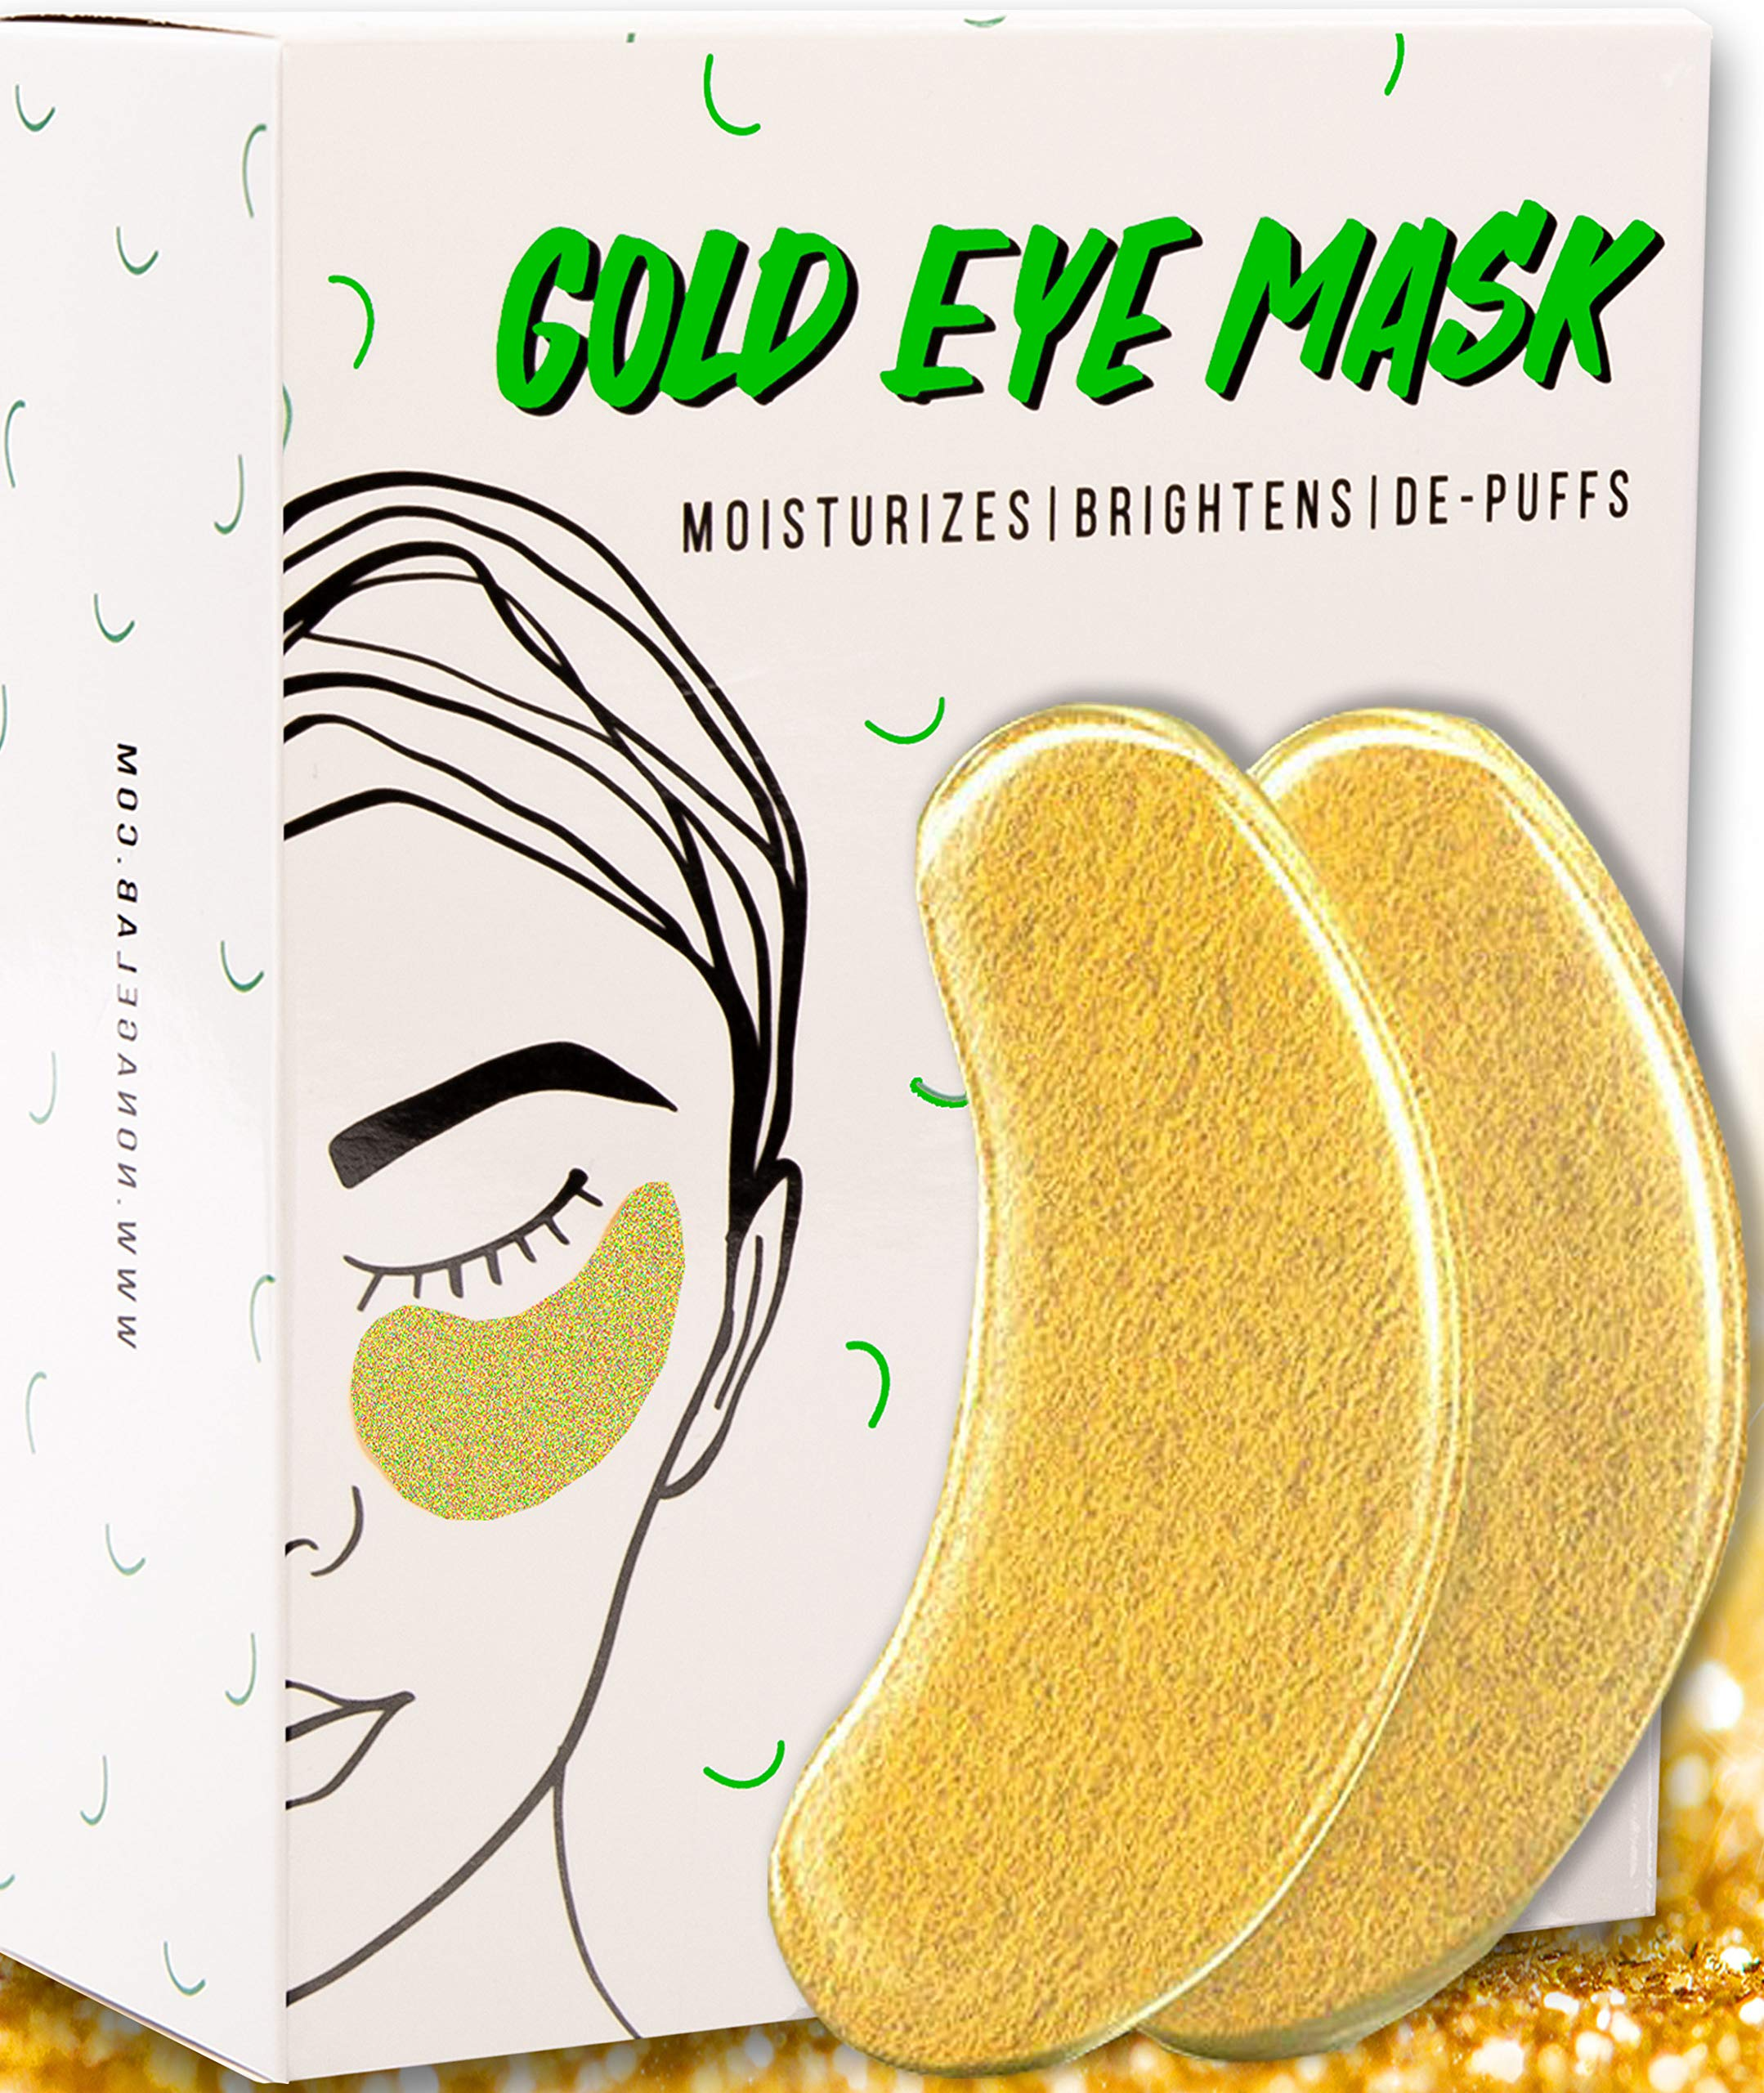 Under Eye Gold Eye Mask - Energizing, Moisturising 24k Gold Collagen Patches for Reducing Dark Circles Puffiness Undereye Bags, Wrinkles | Vegan, All-Natural (15 Pairs) by NonAgeLab